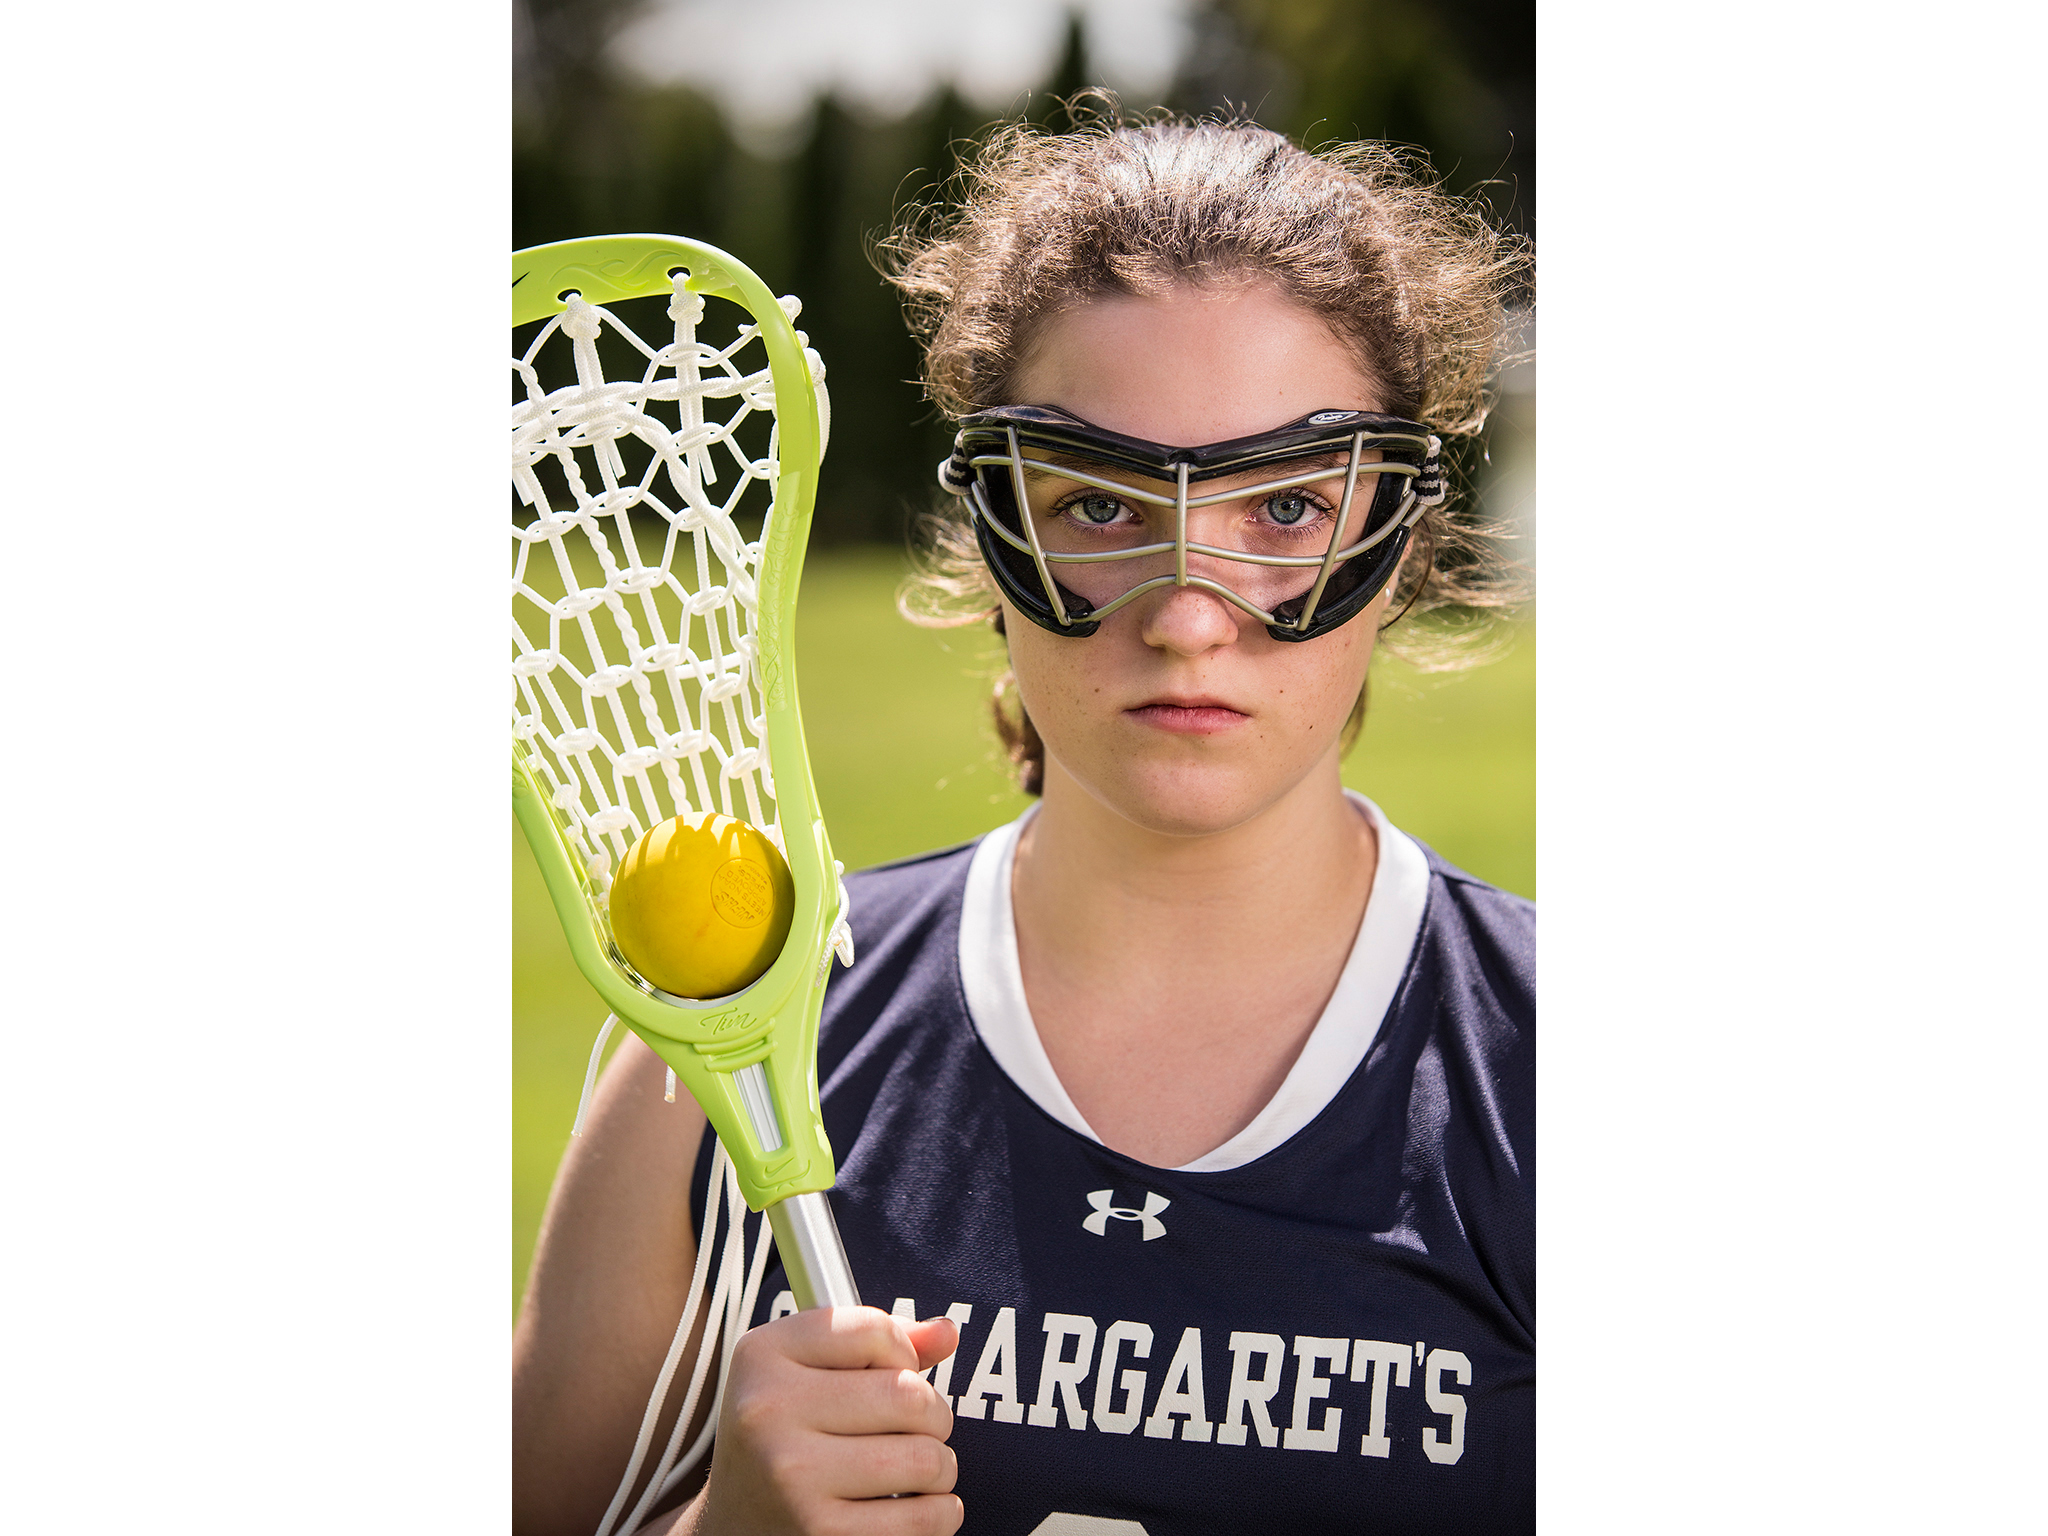 Private school girl's lacrosse player photo with stick and ball